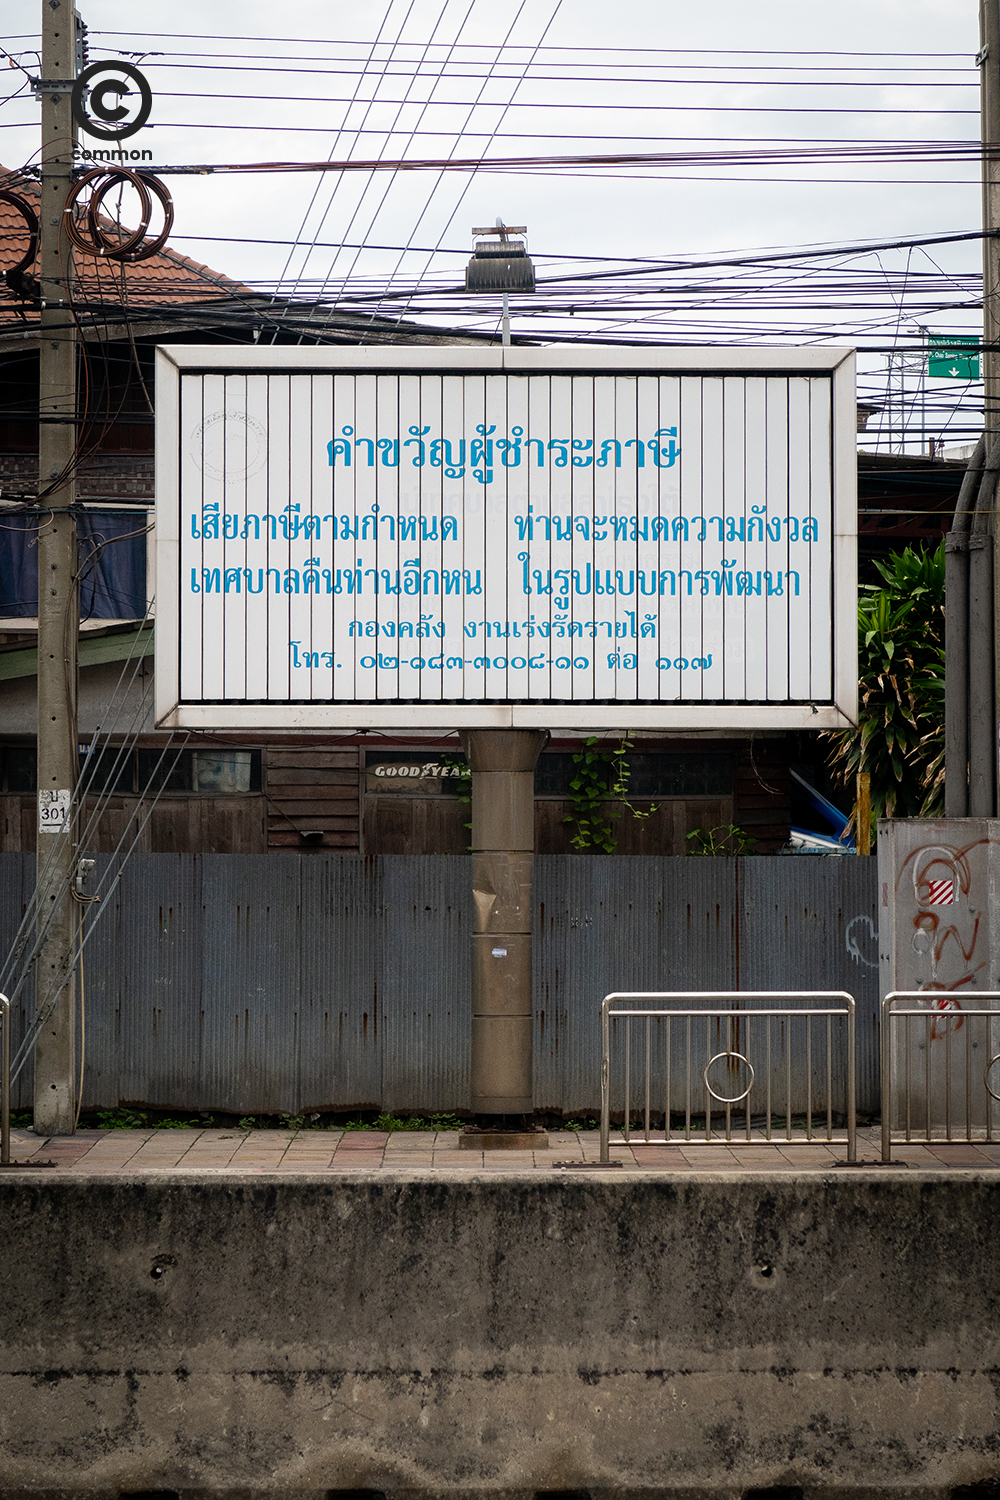 #photoessay #คำขวัญ #CULTURE #becommon